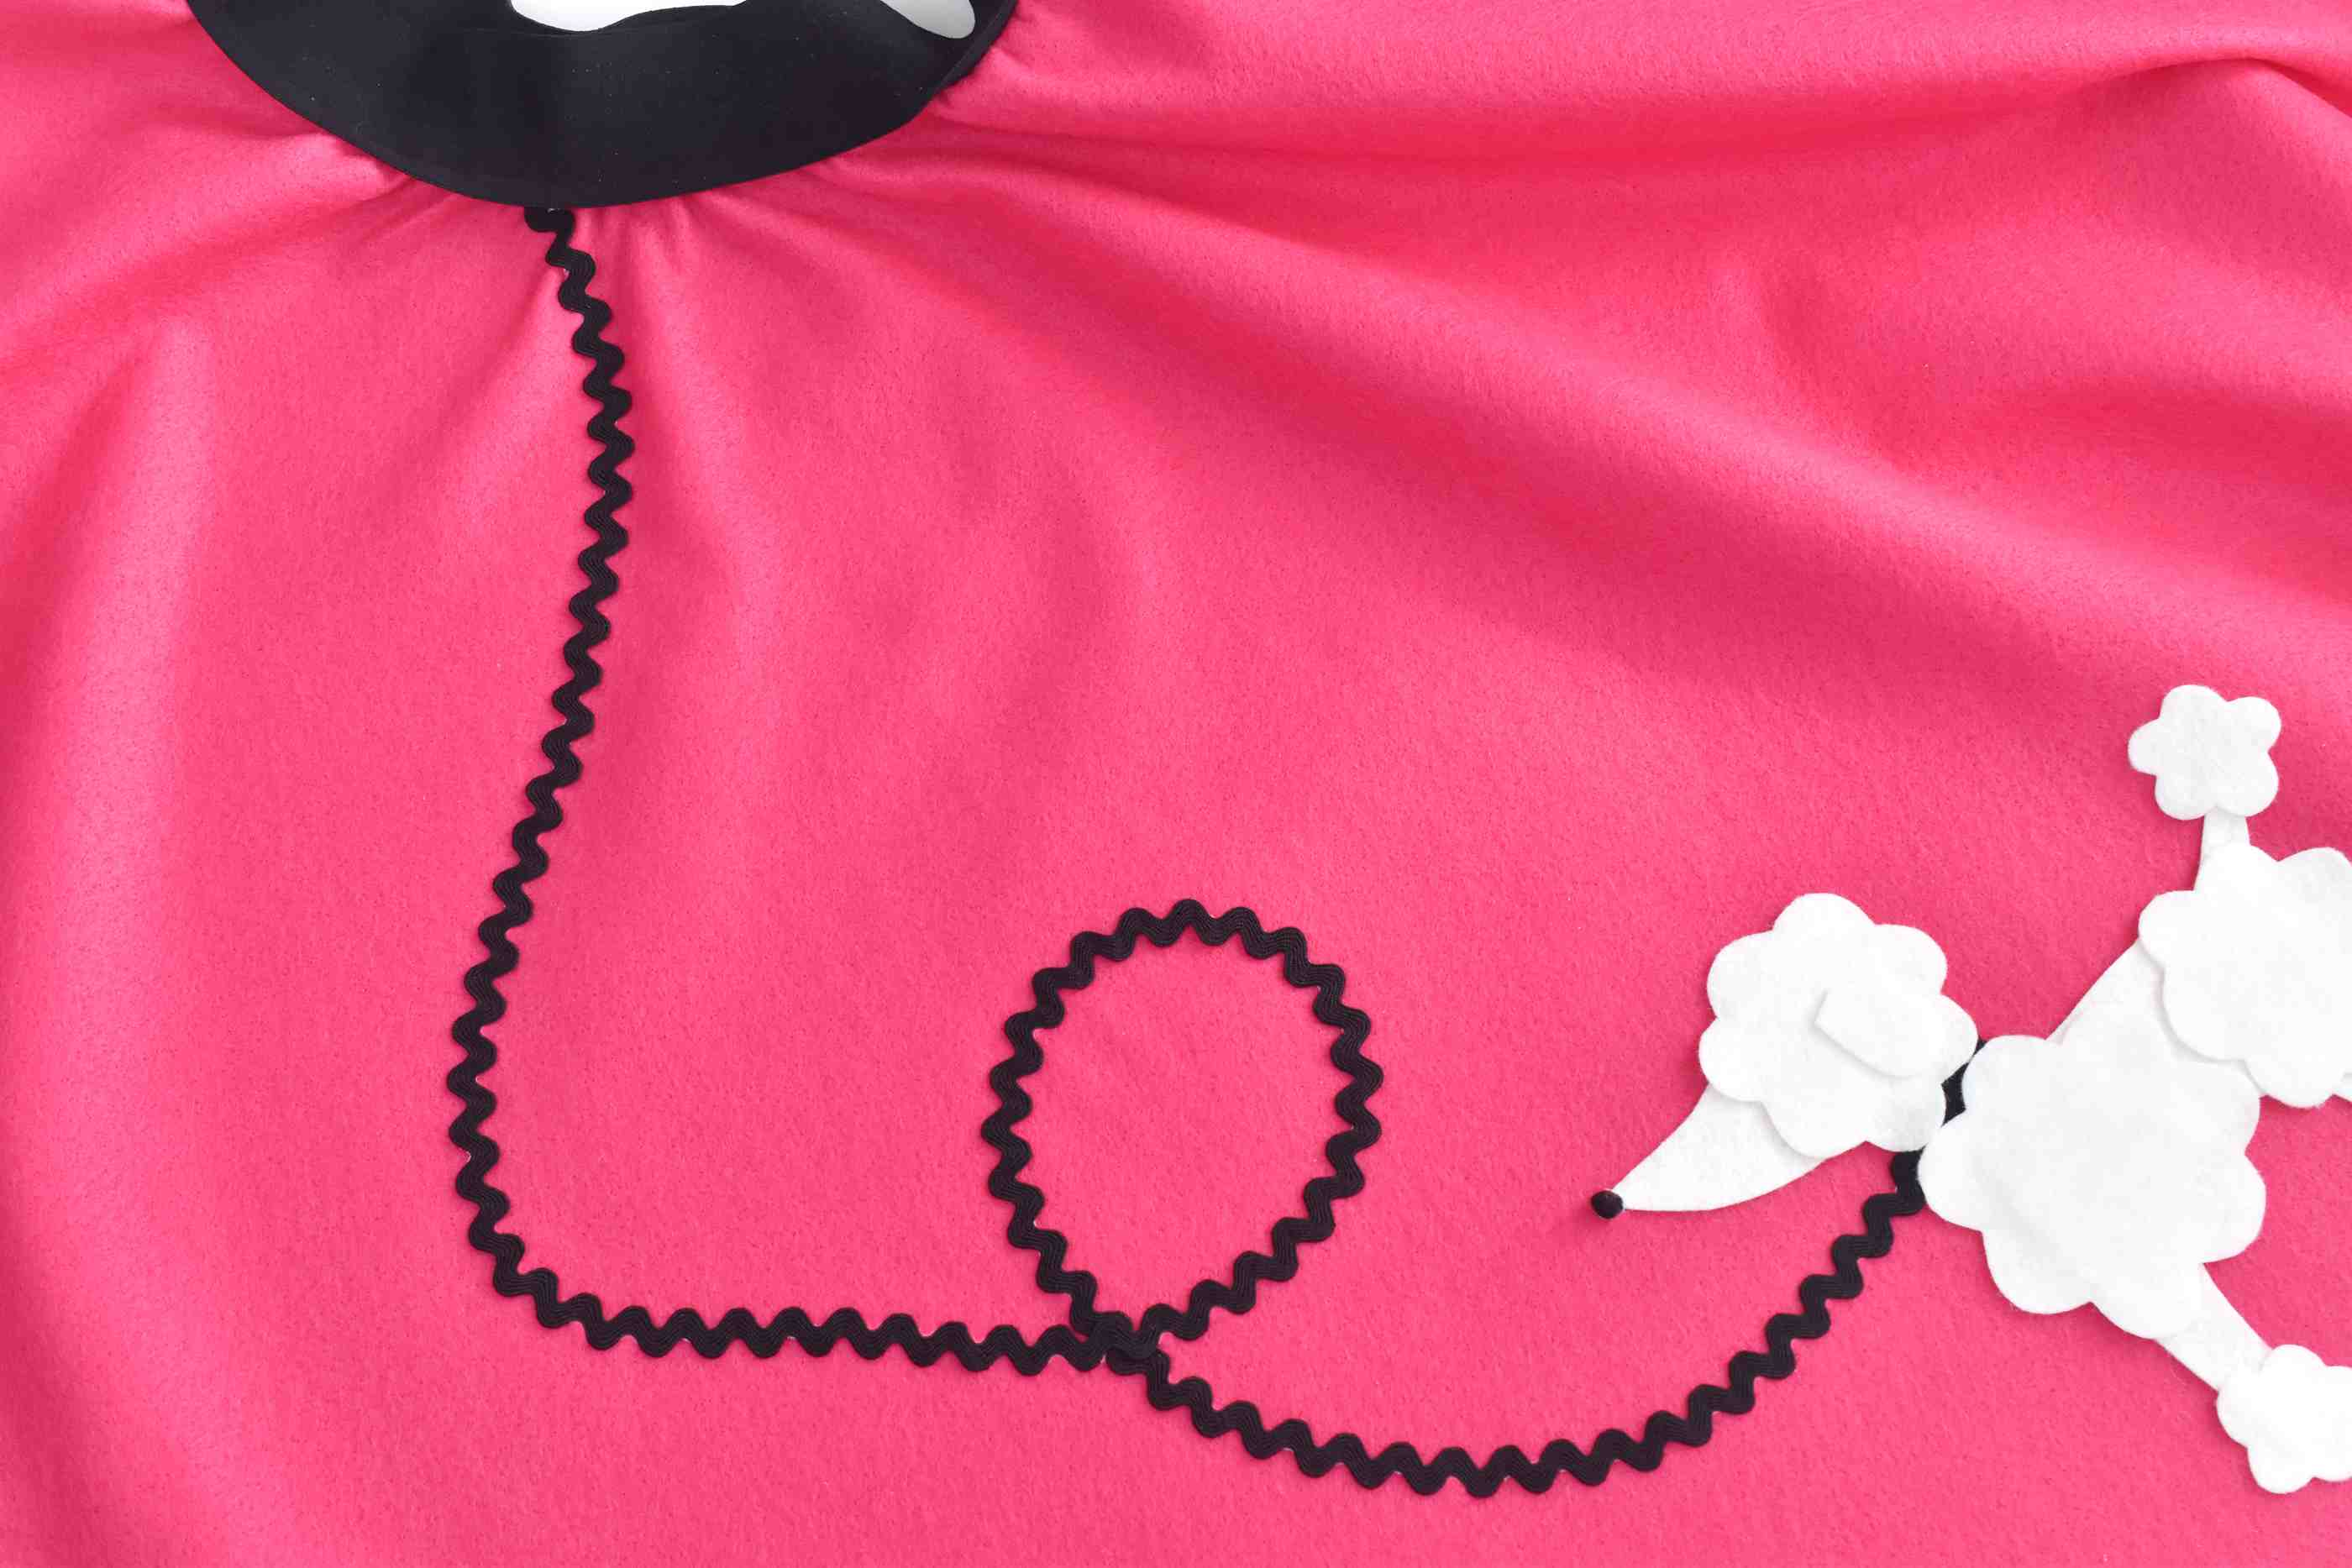 decorations on poodle skirt